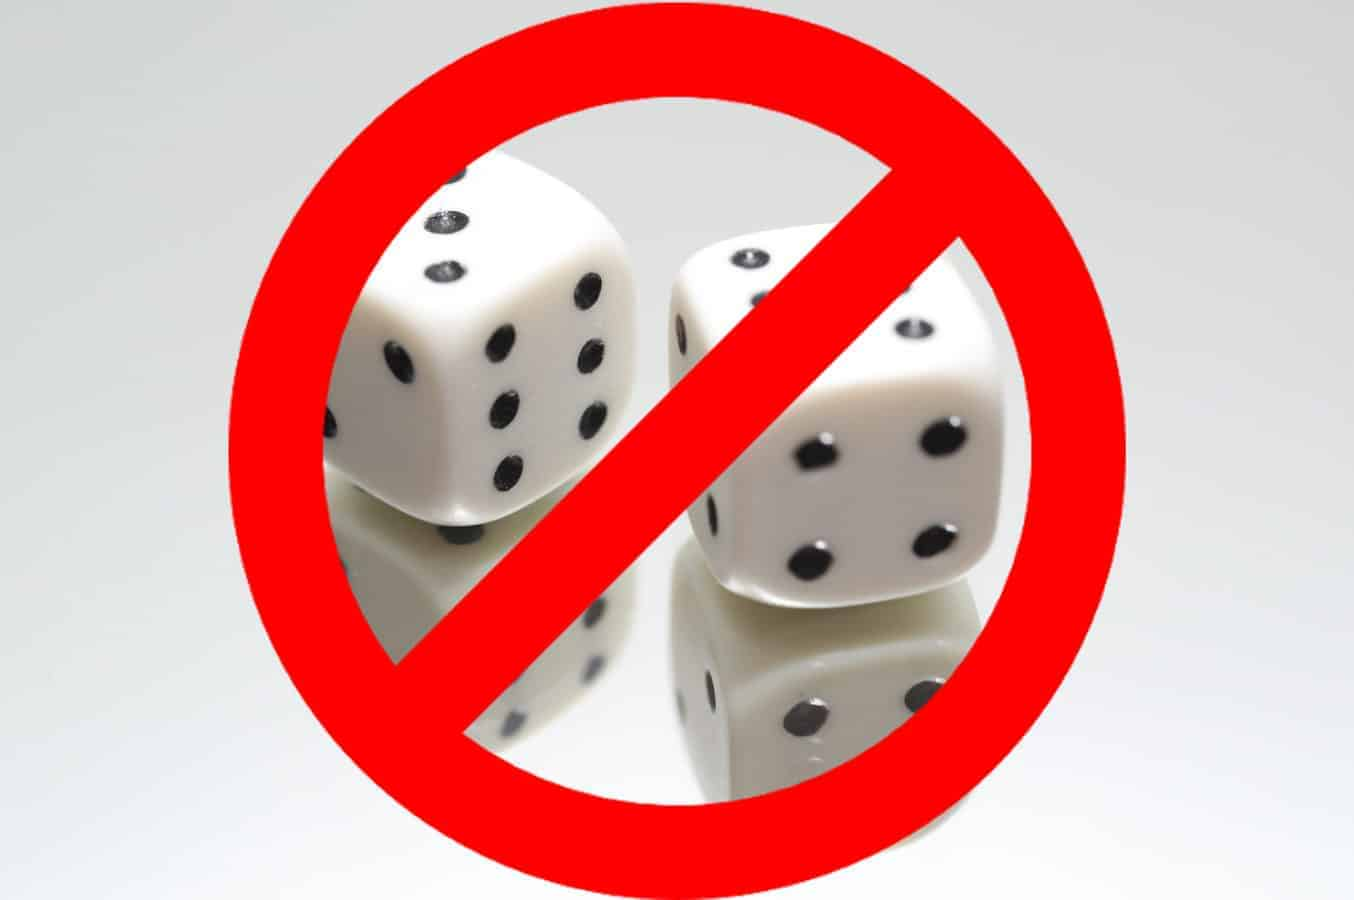 Board Games Without Dice